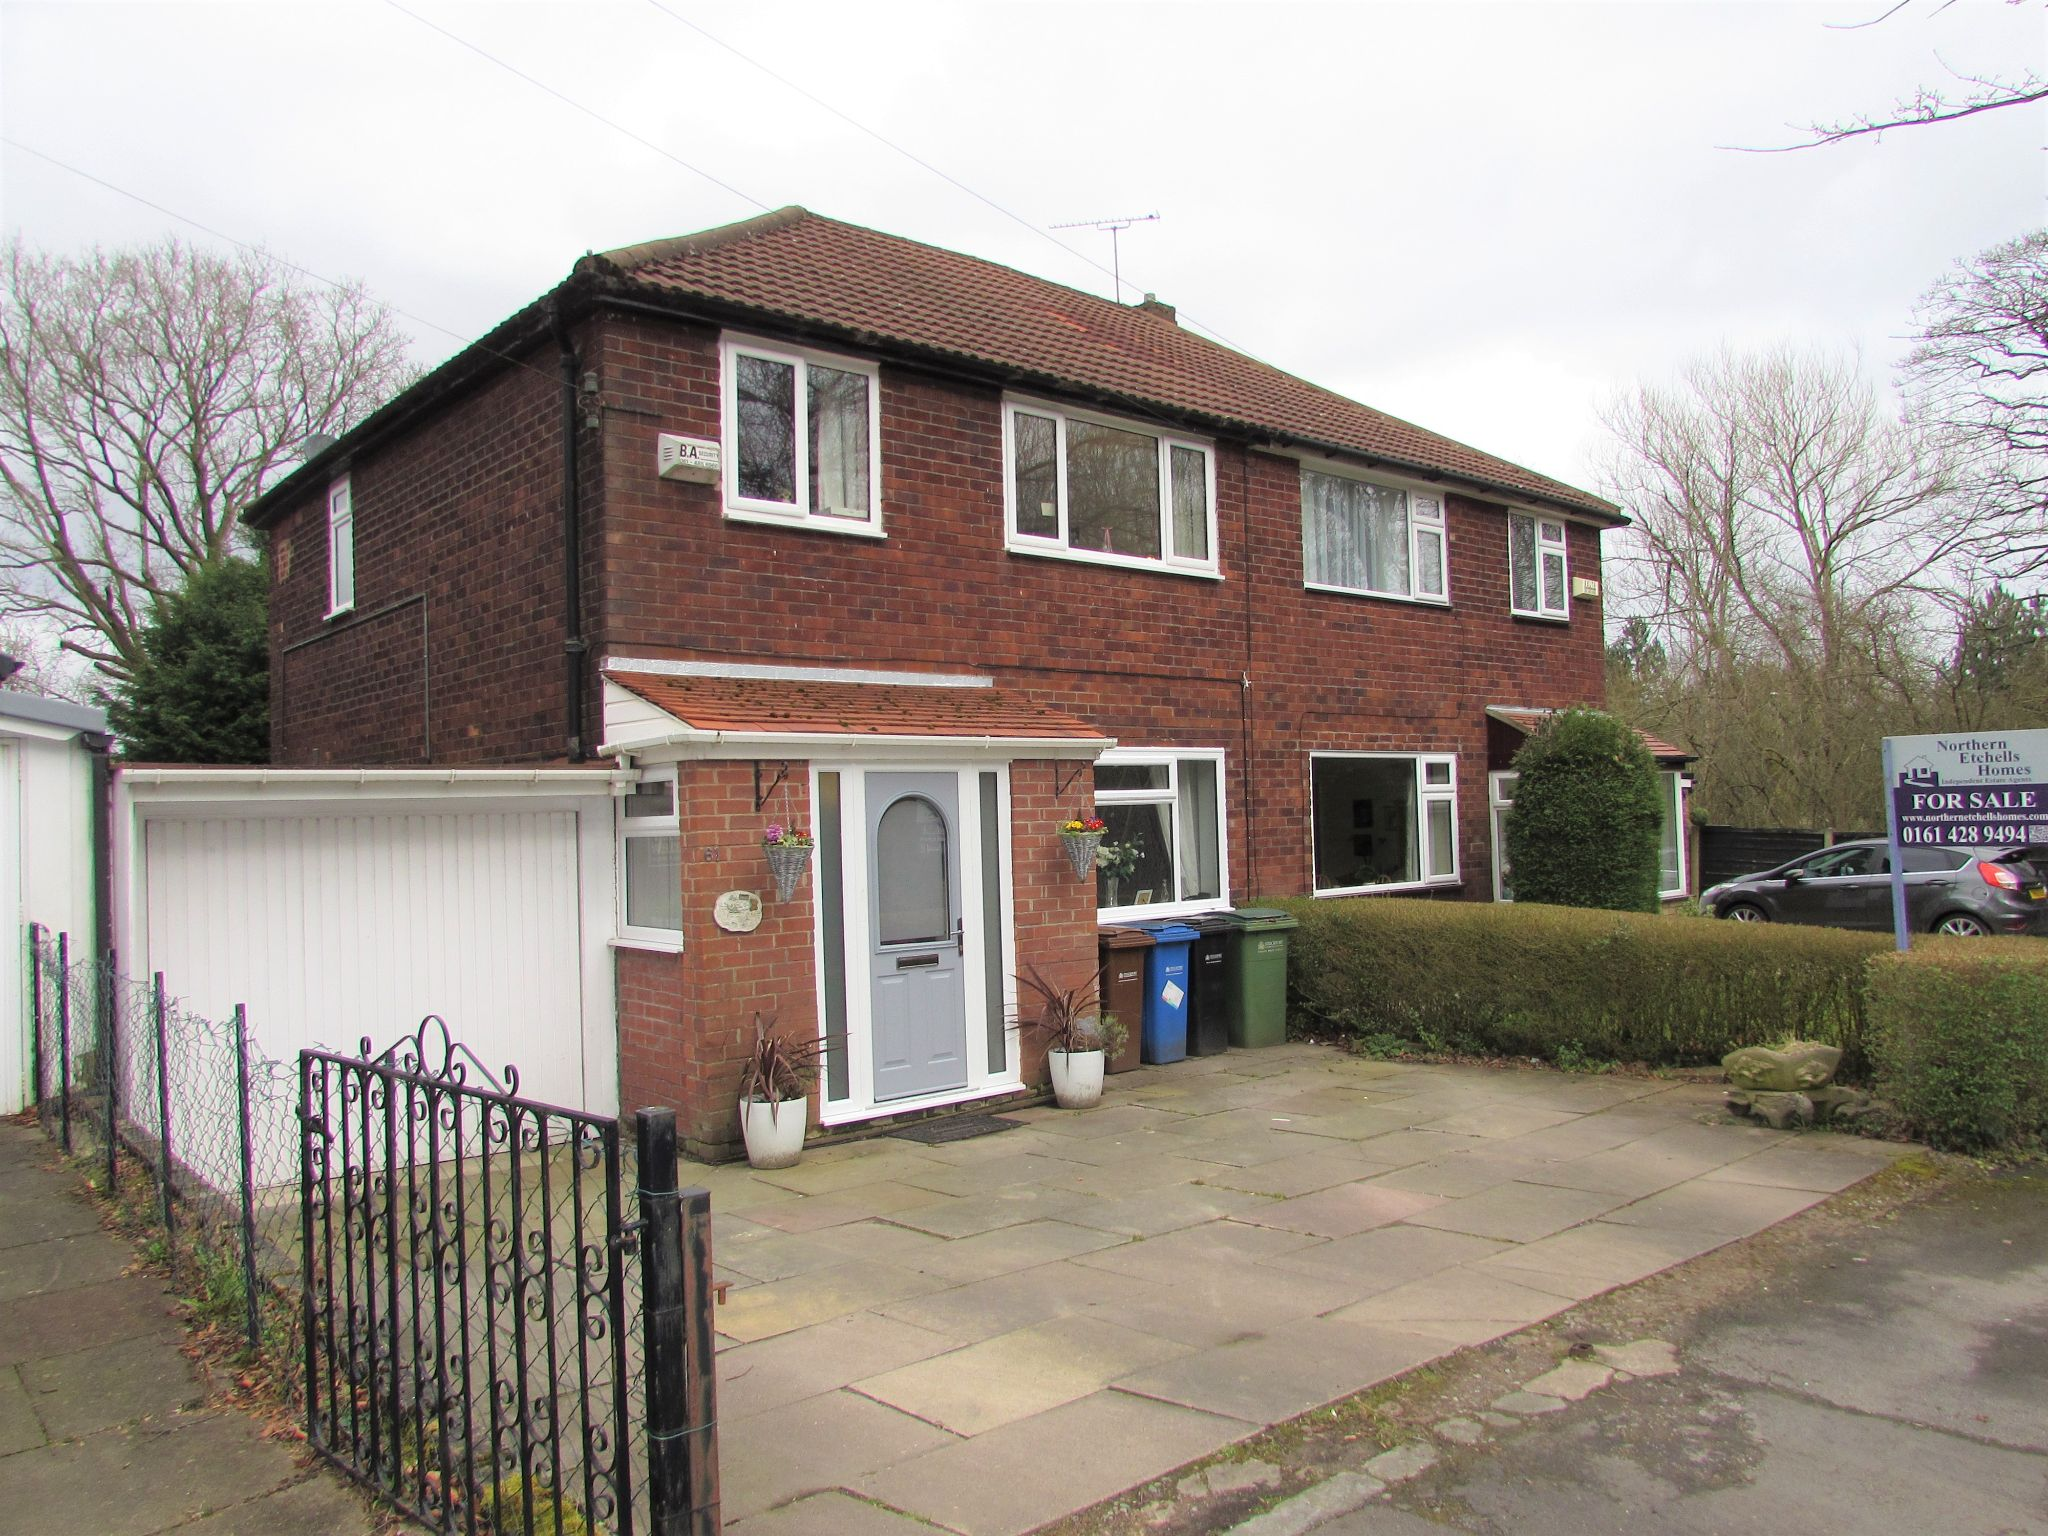 3 Bedroom Semi-detached House For Sale - Frontage